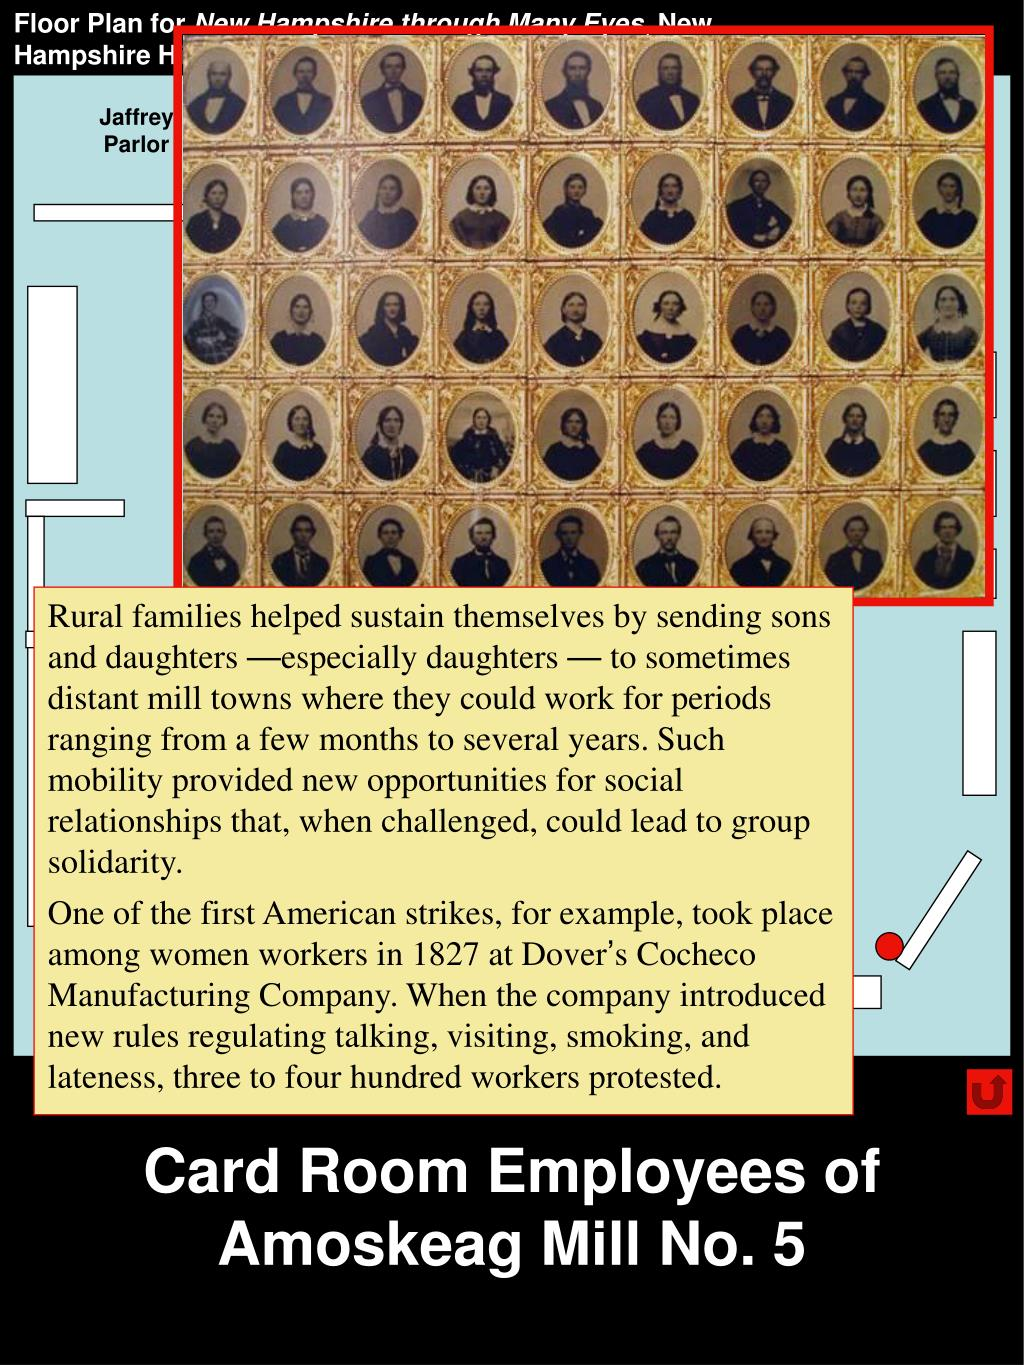 Card Room Employees of Amoskeag Mill No. 5